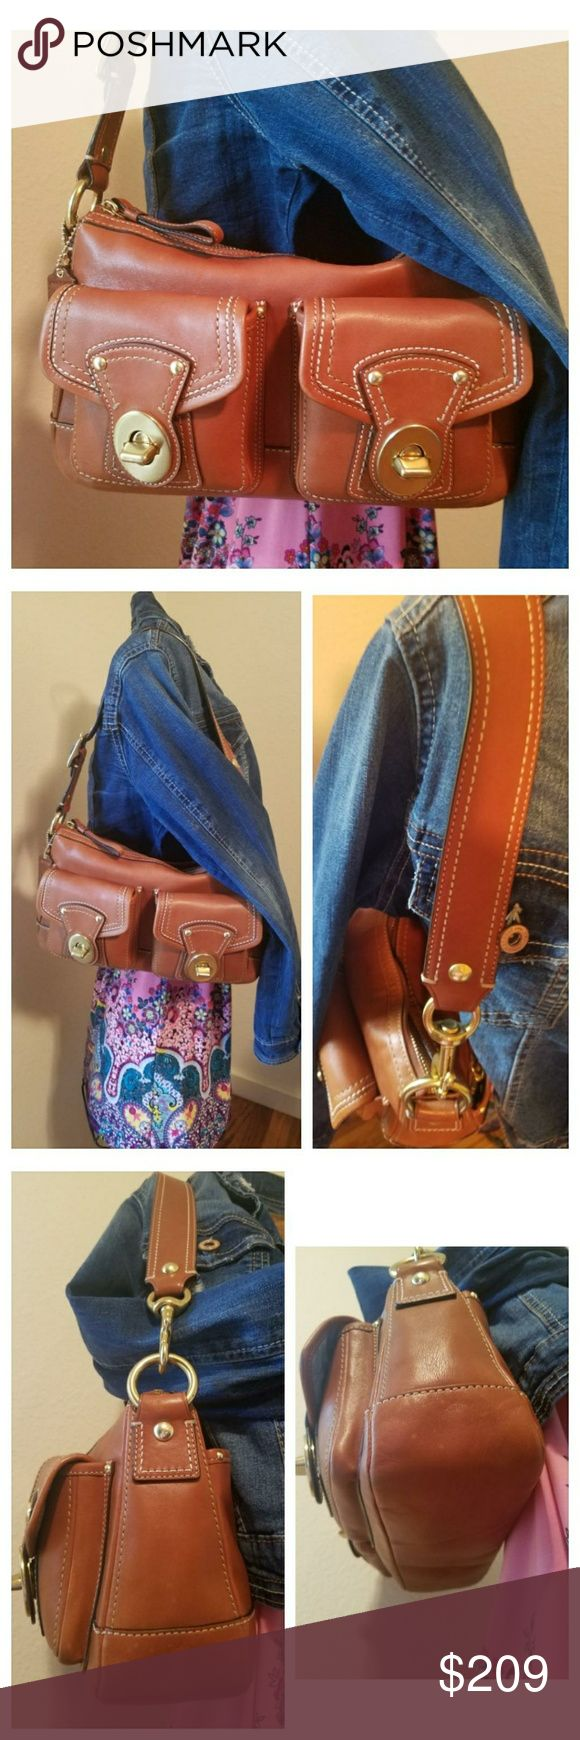 Coach Legacy Whiskey Hobo A beautiful Coach bag; style F12868 in great condition. Exterior has 2 front pockets w/turn locks & a full length back pocket that is zippered. Interior: 2 inside slip pockets on the front wall & a back wall zipper pocket w/blue signature print sateen material. There are a few small discolored spots in the leather; on the front by the zipper & on the back top. Please see pics. Those areas should blend in eventually once the leather gets patina. Brass colored…